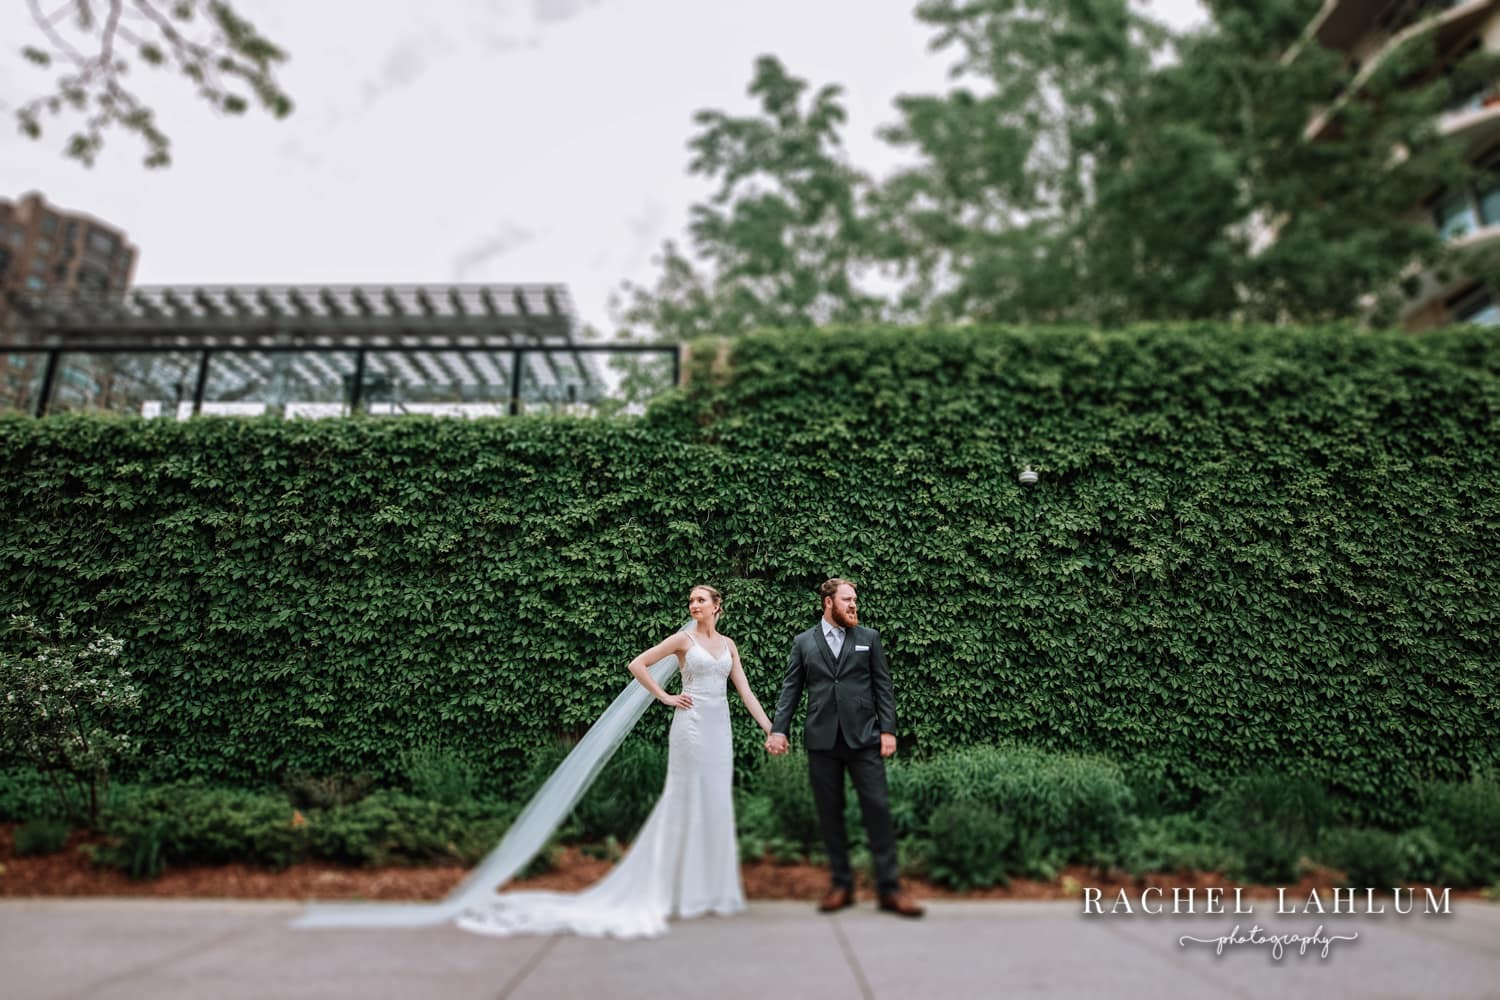 Bride and groom wedding portrait at Loring Park Greenway ivy wall in Downtown Minneapolis